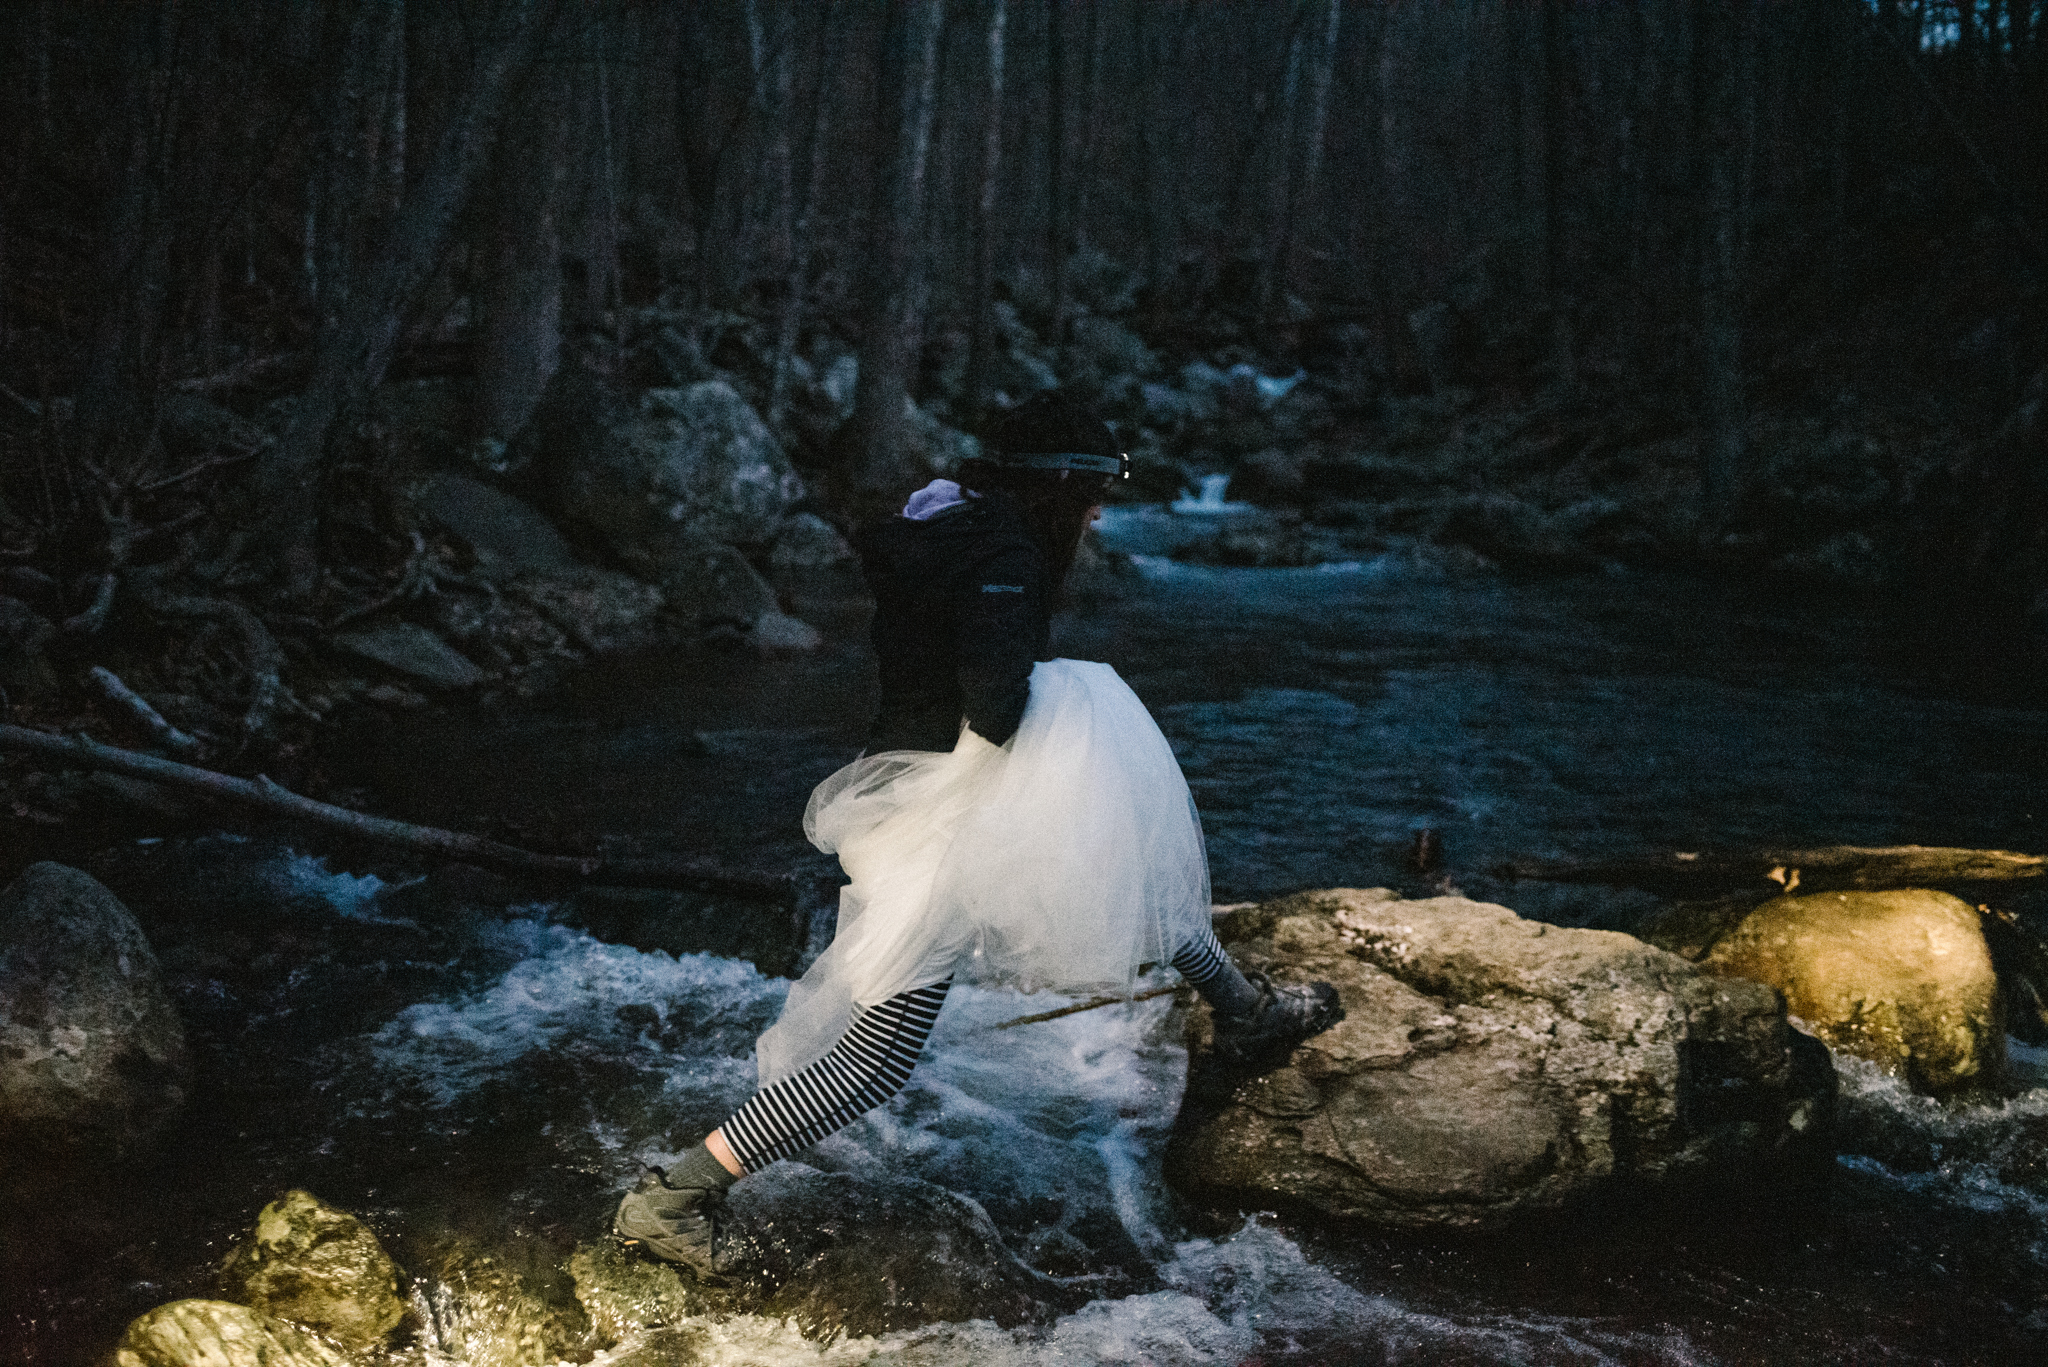 Stephanie and Steve - Shenandoah National Park Elopement - Sunrise Hiking Elopement - Adventurous Elopement - Virginia Elopement Photographer - Shenandoah national Park Wedding Photographer - White Sails Creative_0.jpg